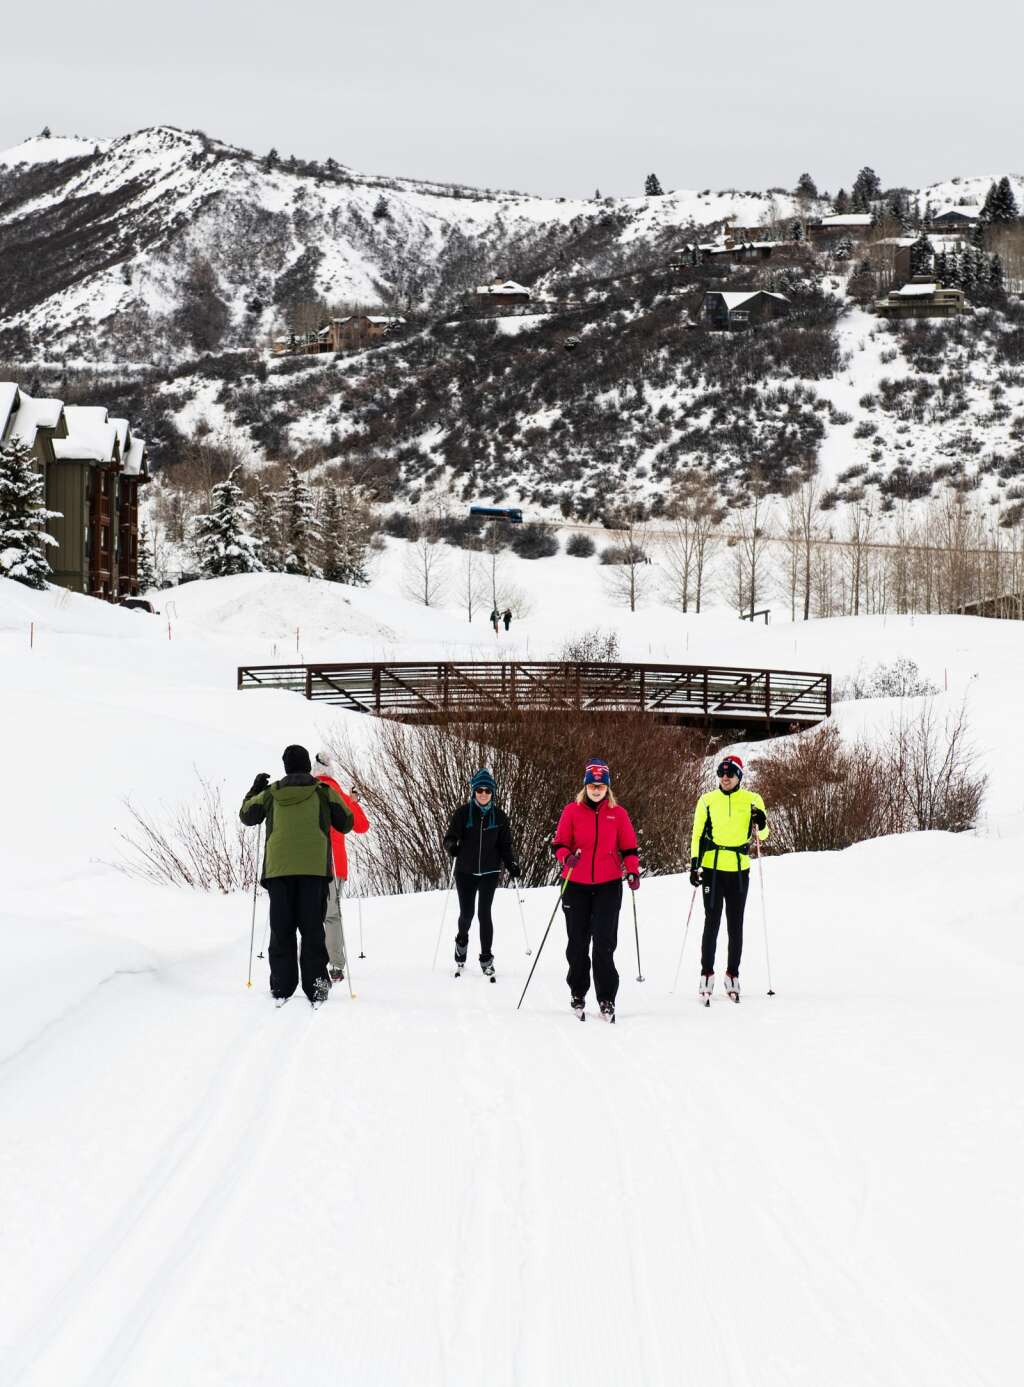 Two groups of cross country skiers pass each other on one of the nordic trails on the golf course in Snowmass on Friday, January 3, 2020. (Kelsey Brunner/The Aspen Times)